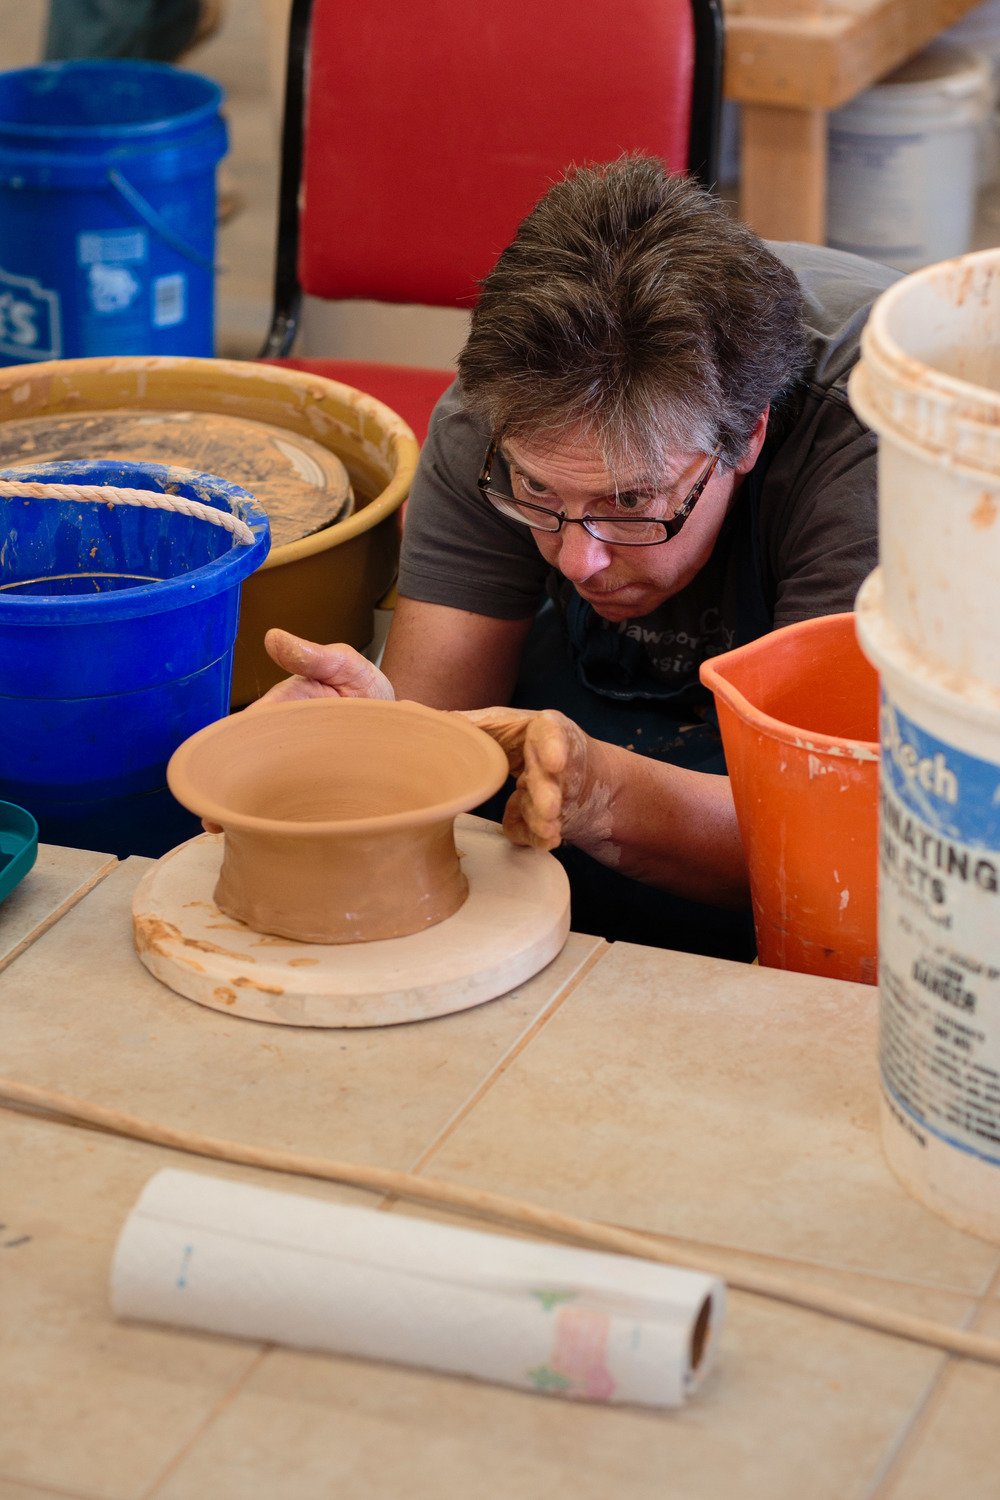 Artist inspects pottery work